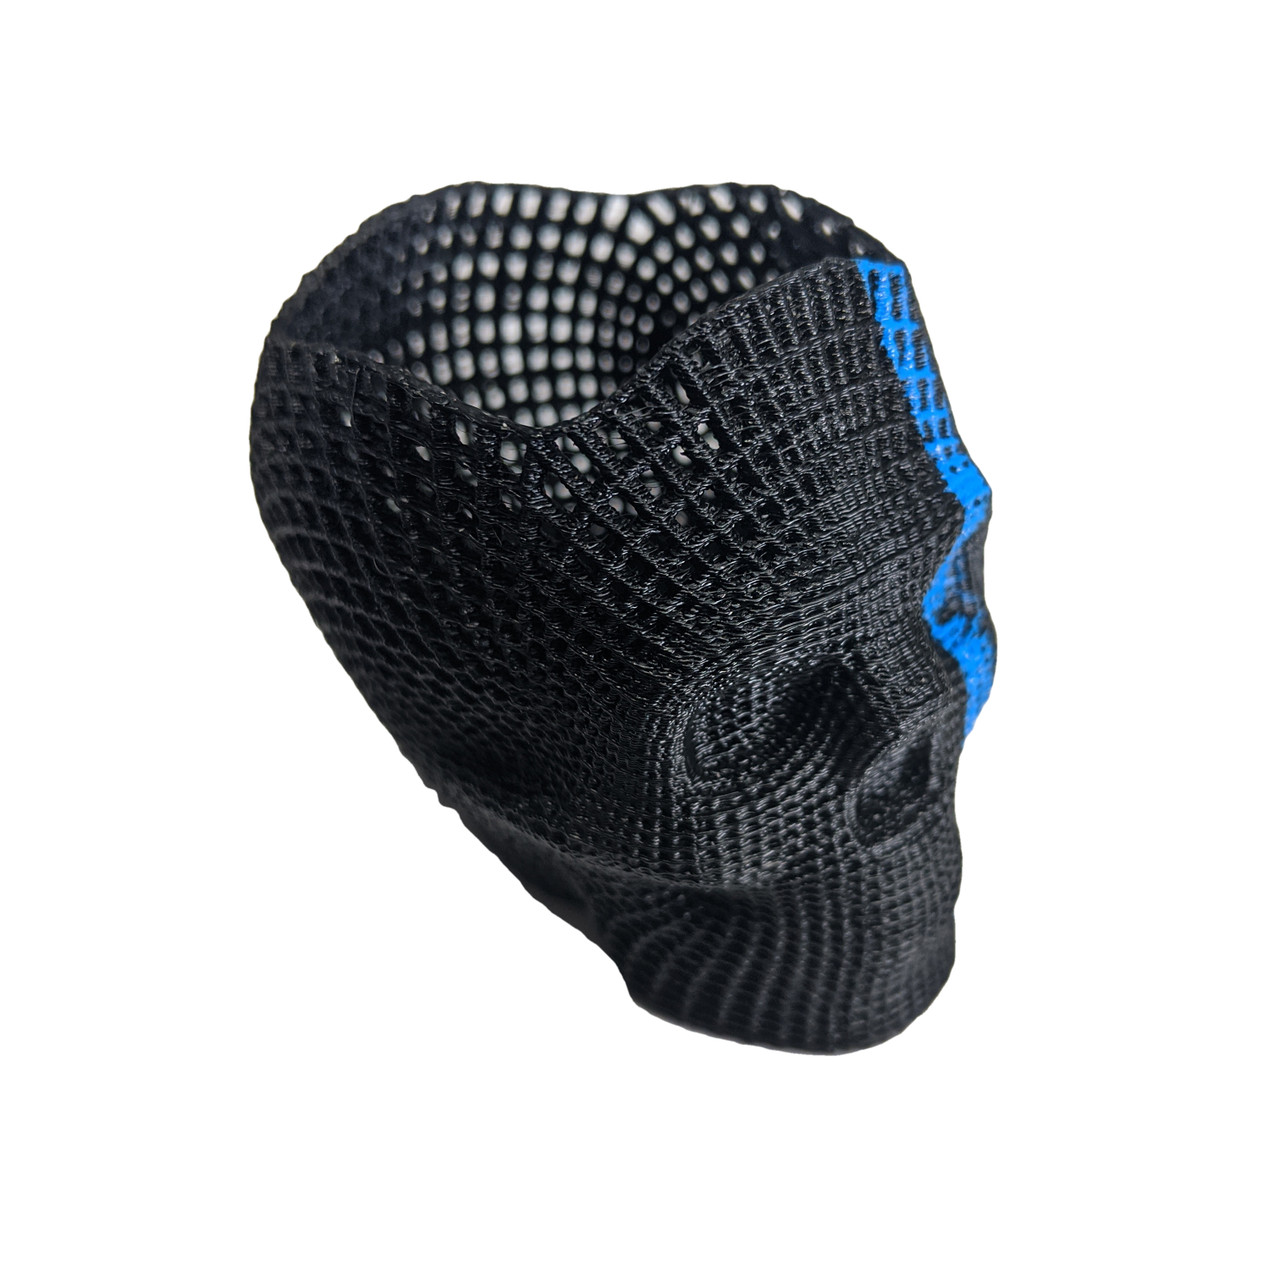 Thin Blue Line Skull | 2.1 inches Tall x 1.7 inches Wide | ABS Plastic | 201066